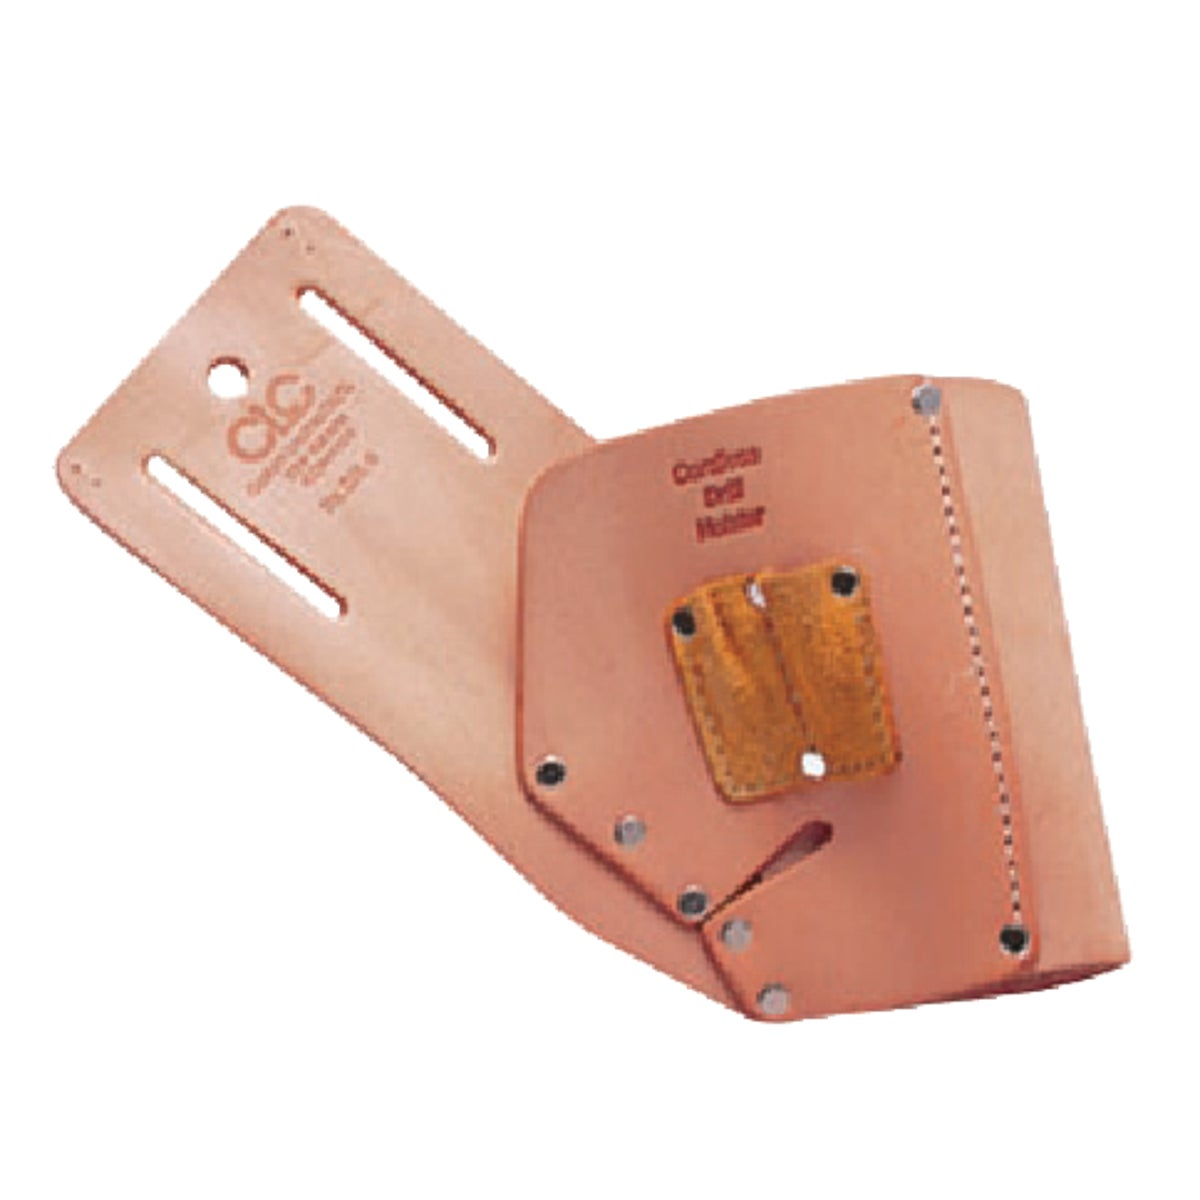 CORDLESS DRILL HOLSTER - DRL91 by Custom Leathercraft